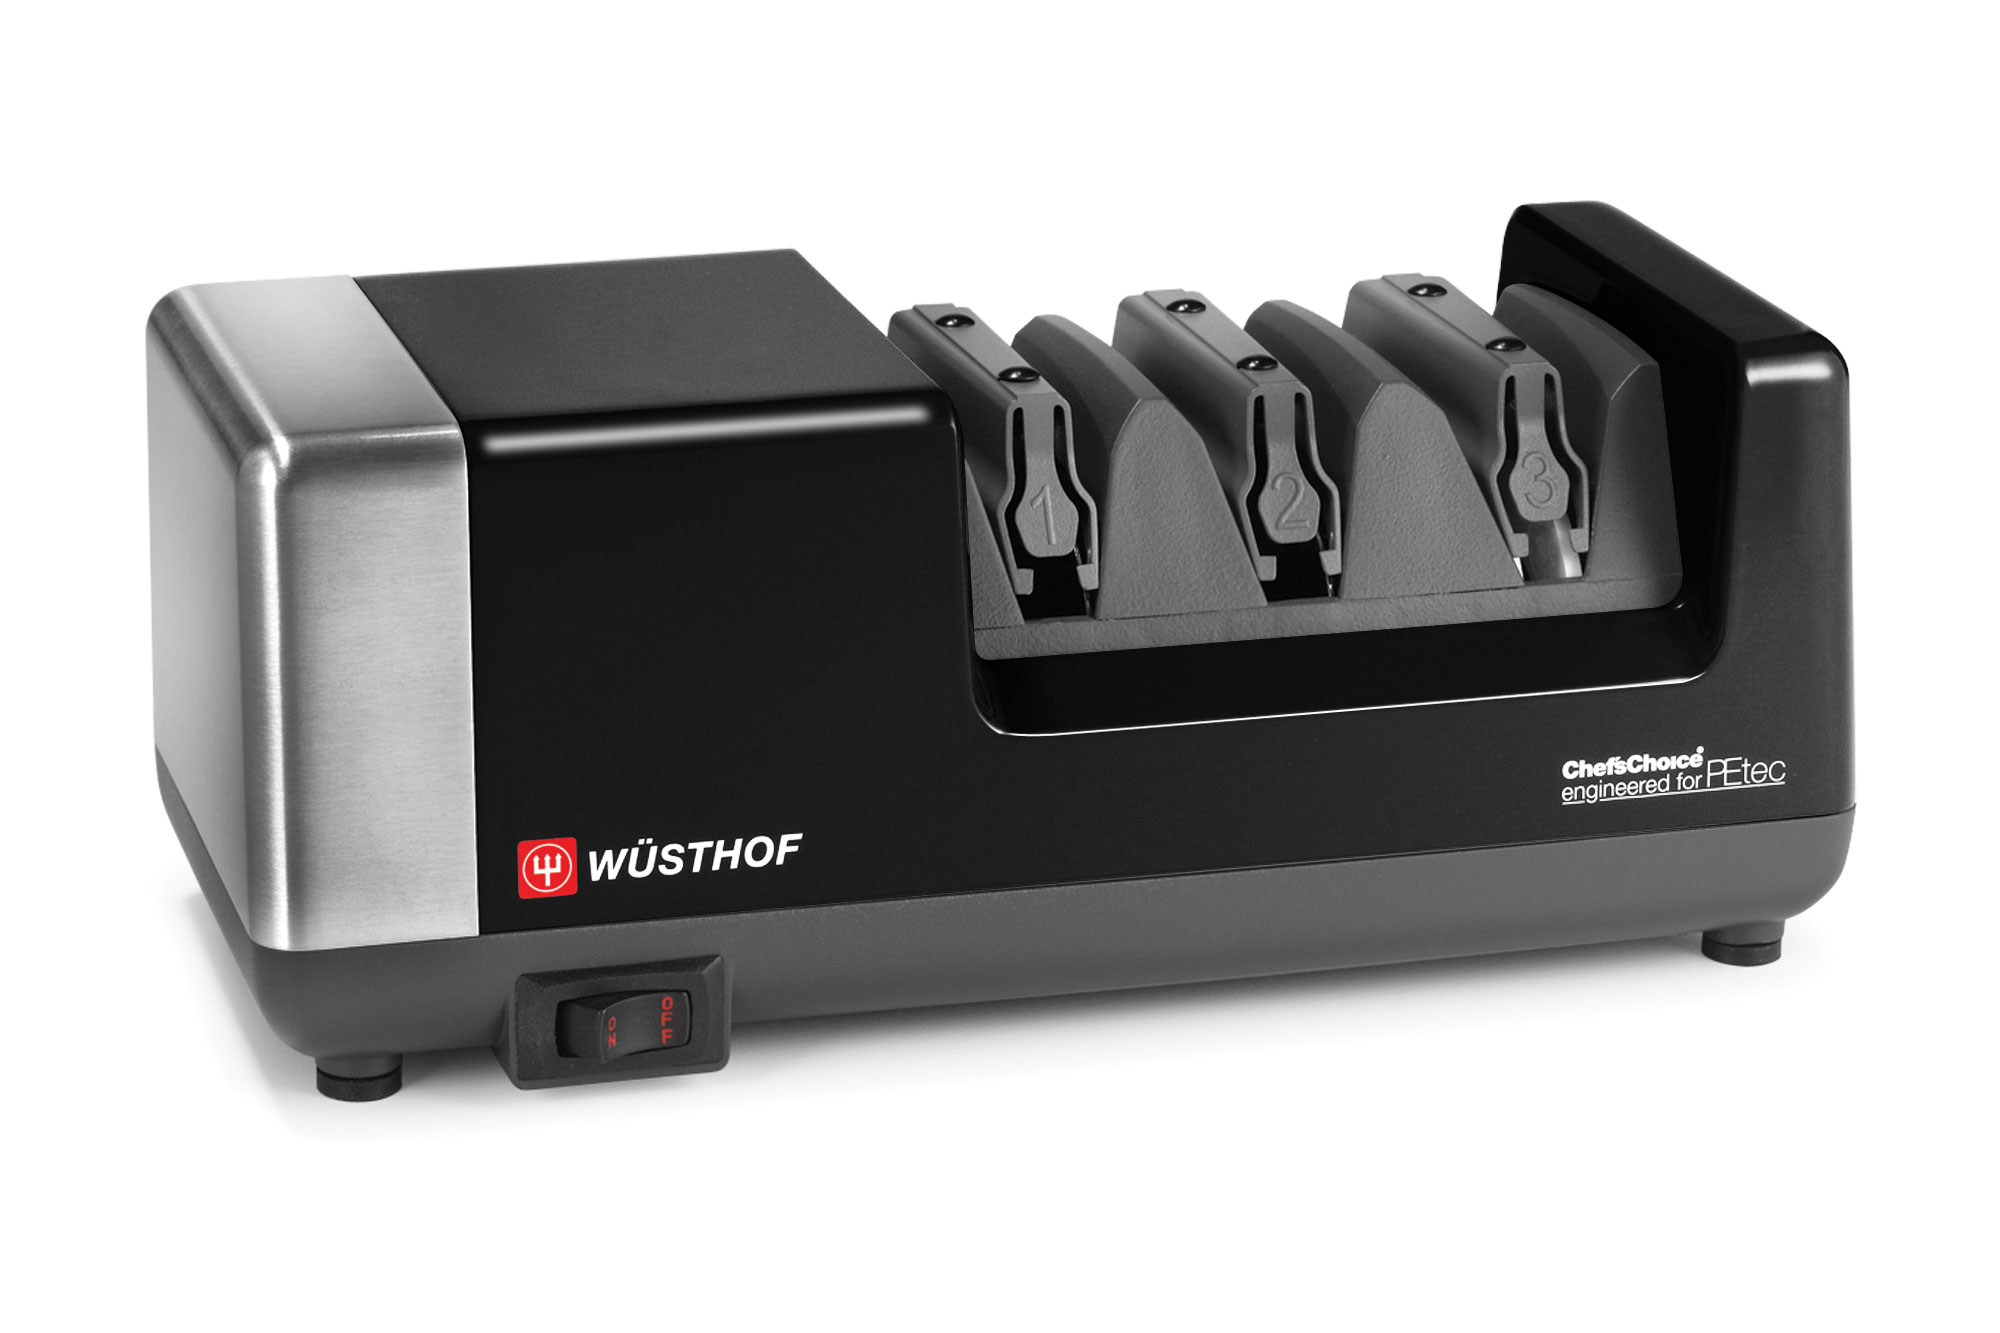 Wusthof Electric Knife Sharpener Black Cutlery And More